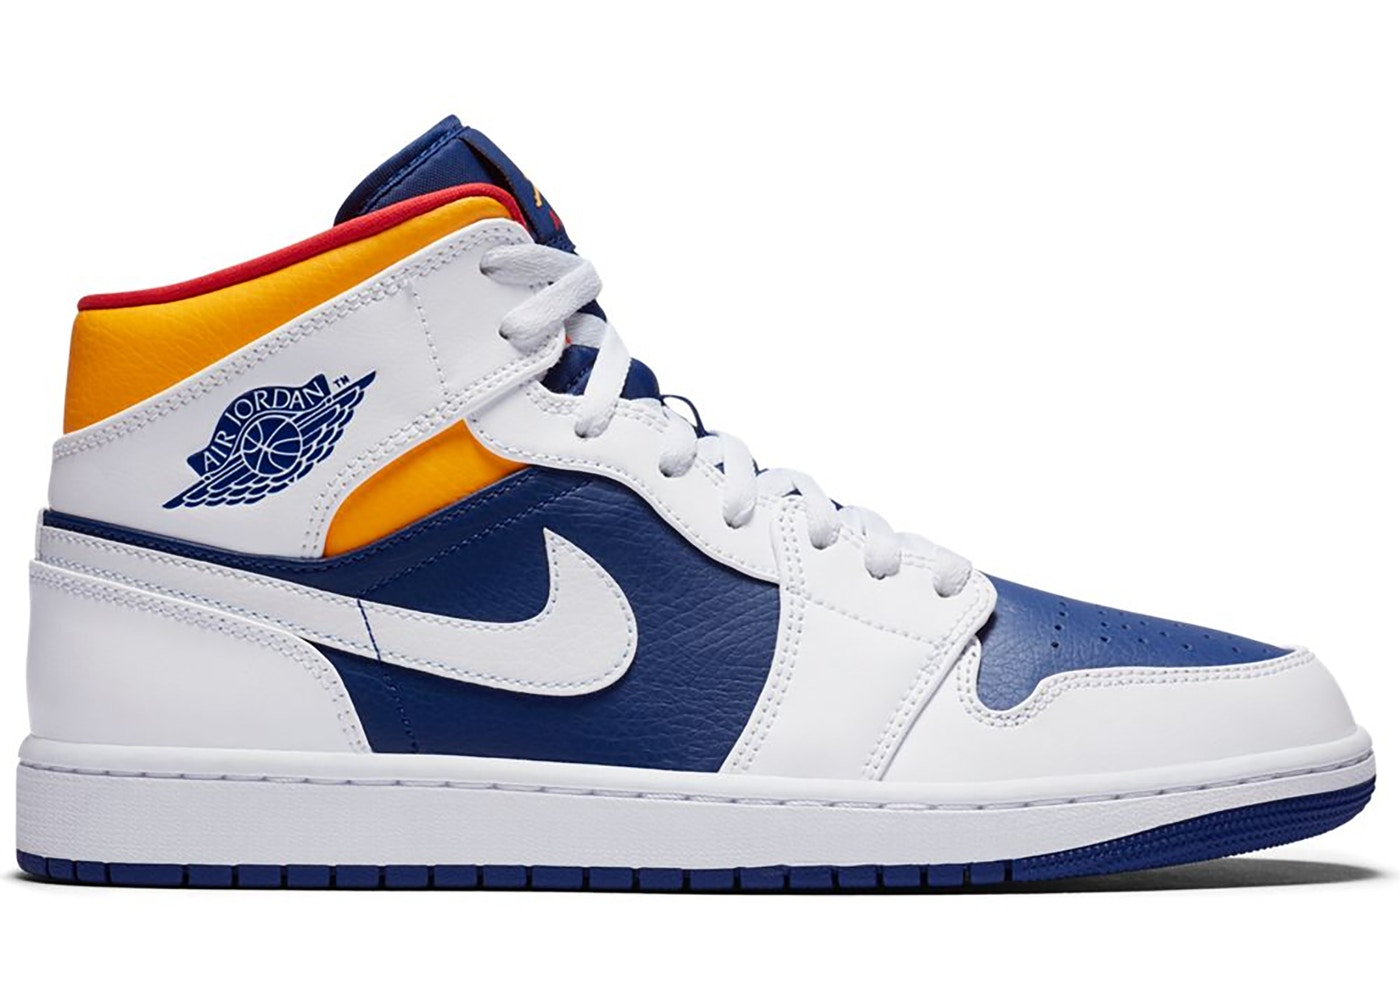 Jordan 1 Mid Royal Blue Laser Orange 554724 131